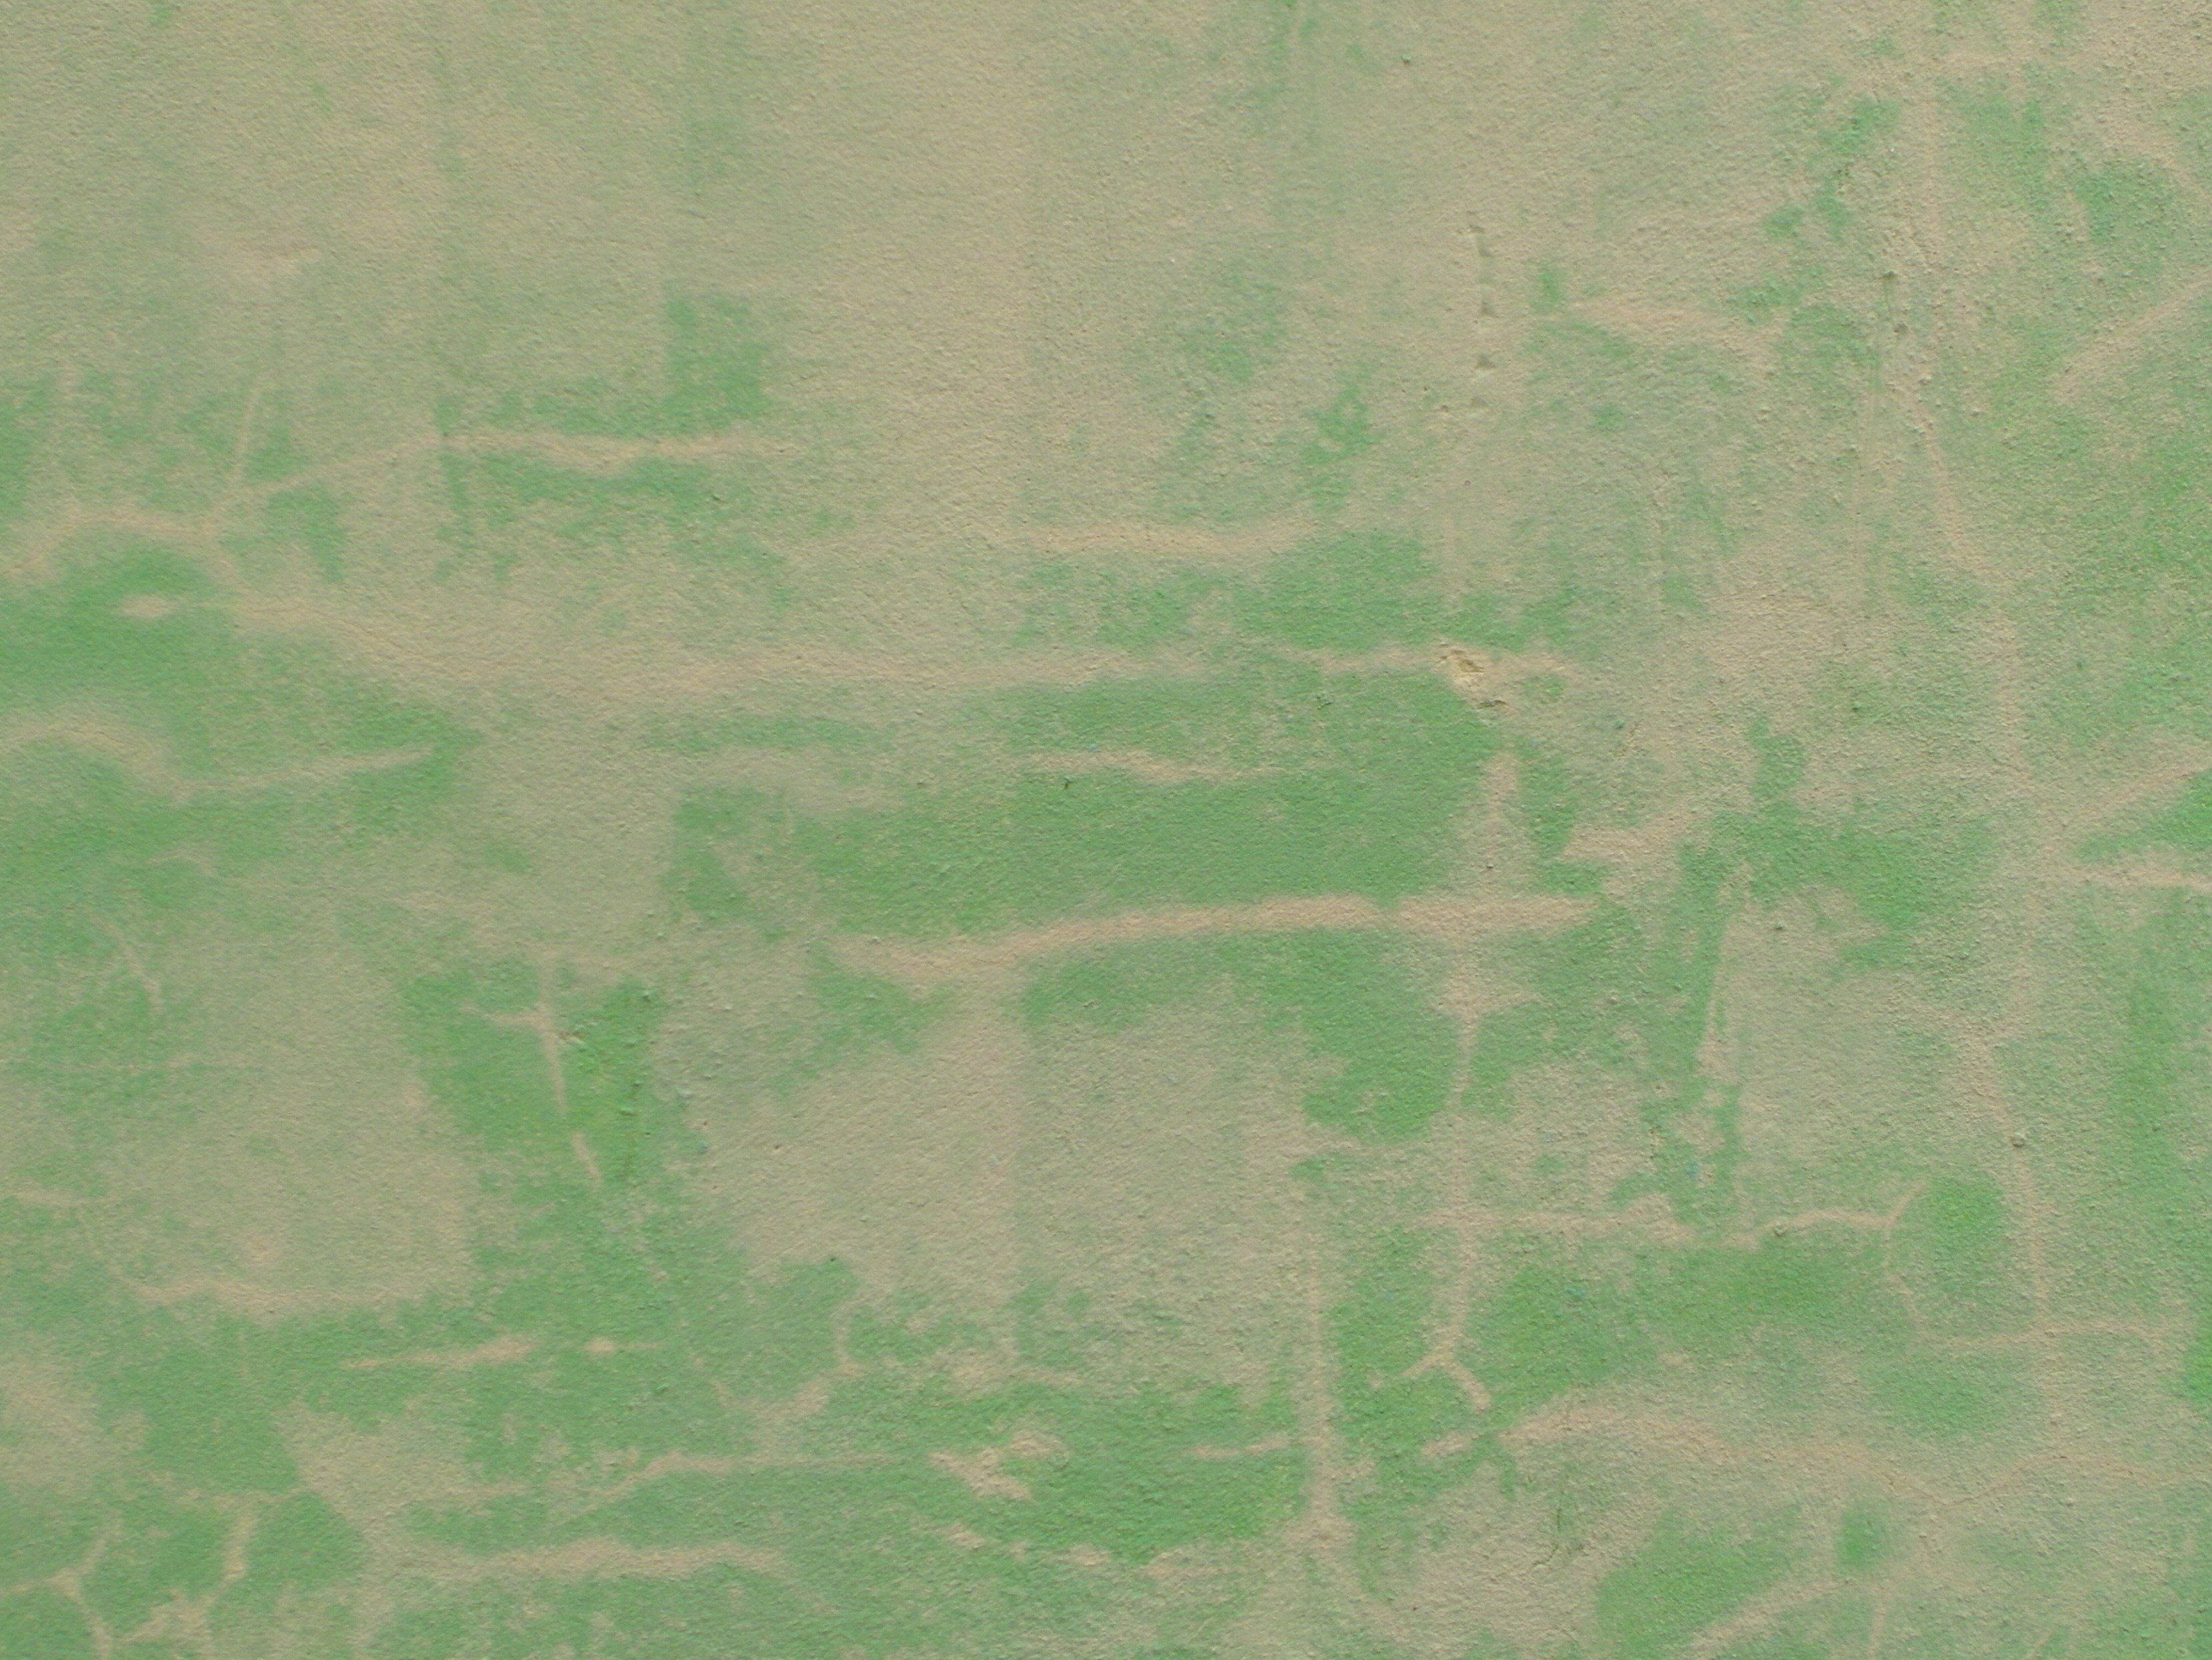 Weathered green grunge background photo